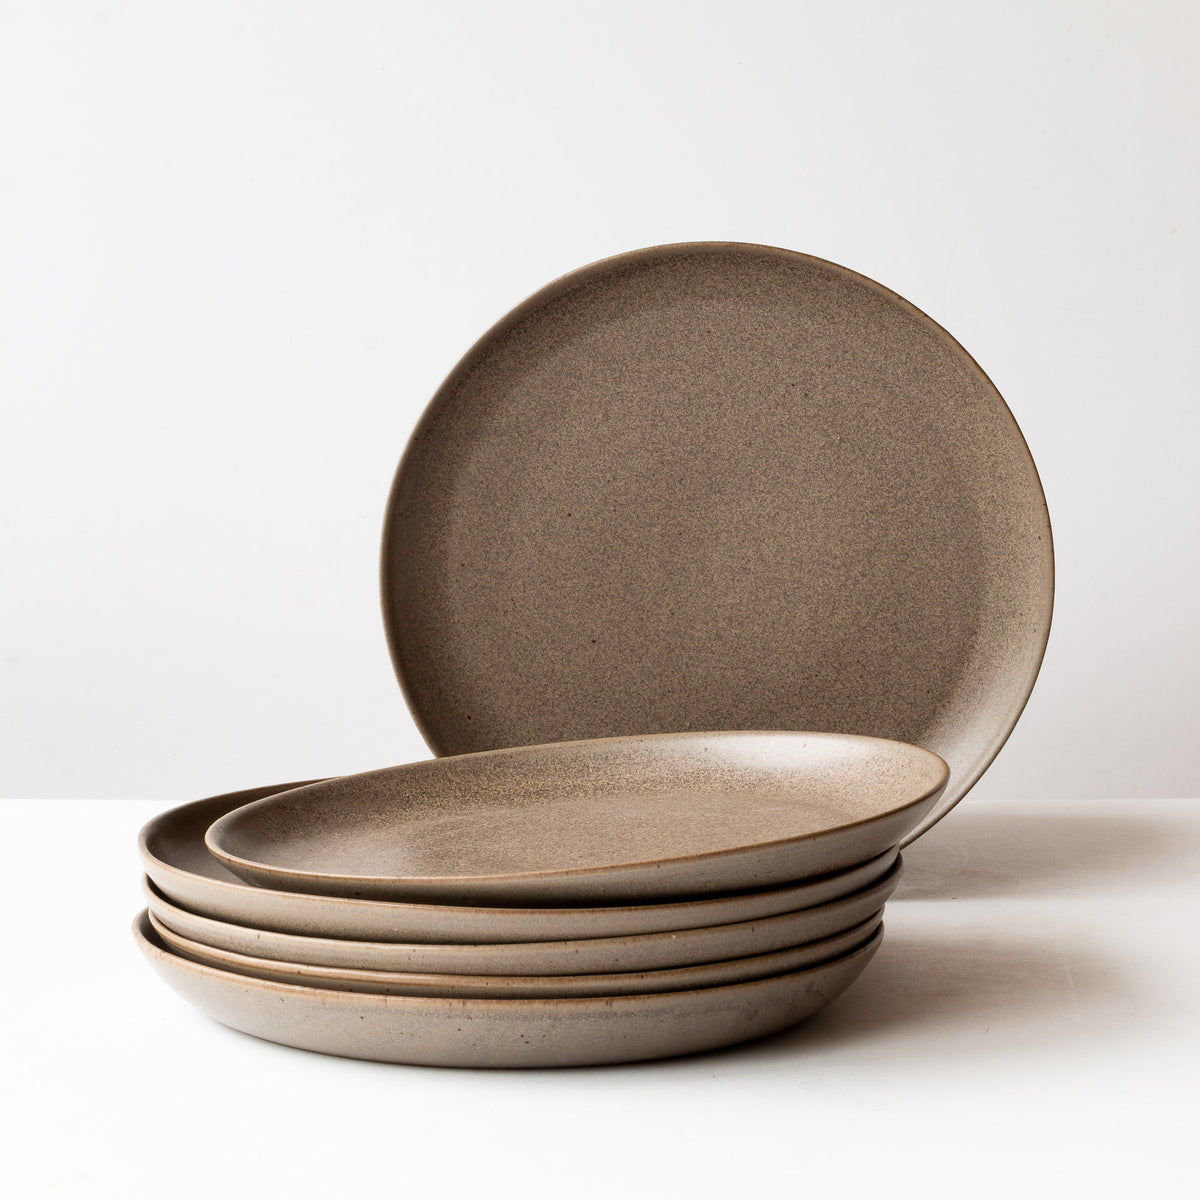 Taupe - Handmade Grey Stoneware Dinner Plates - Sold by Chic & Basta